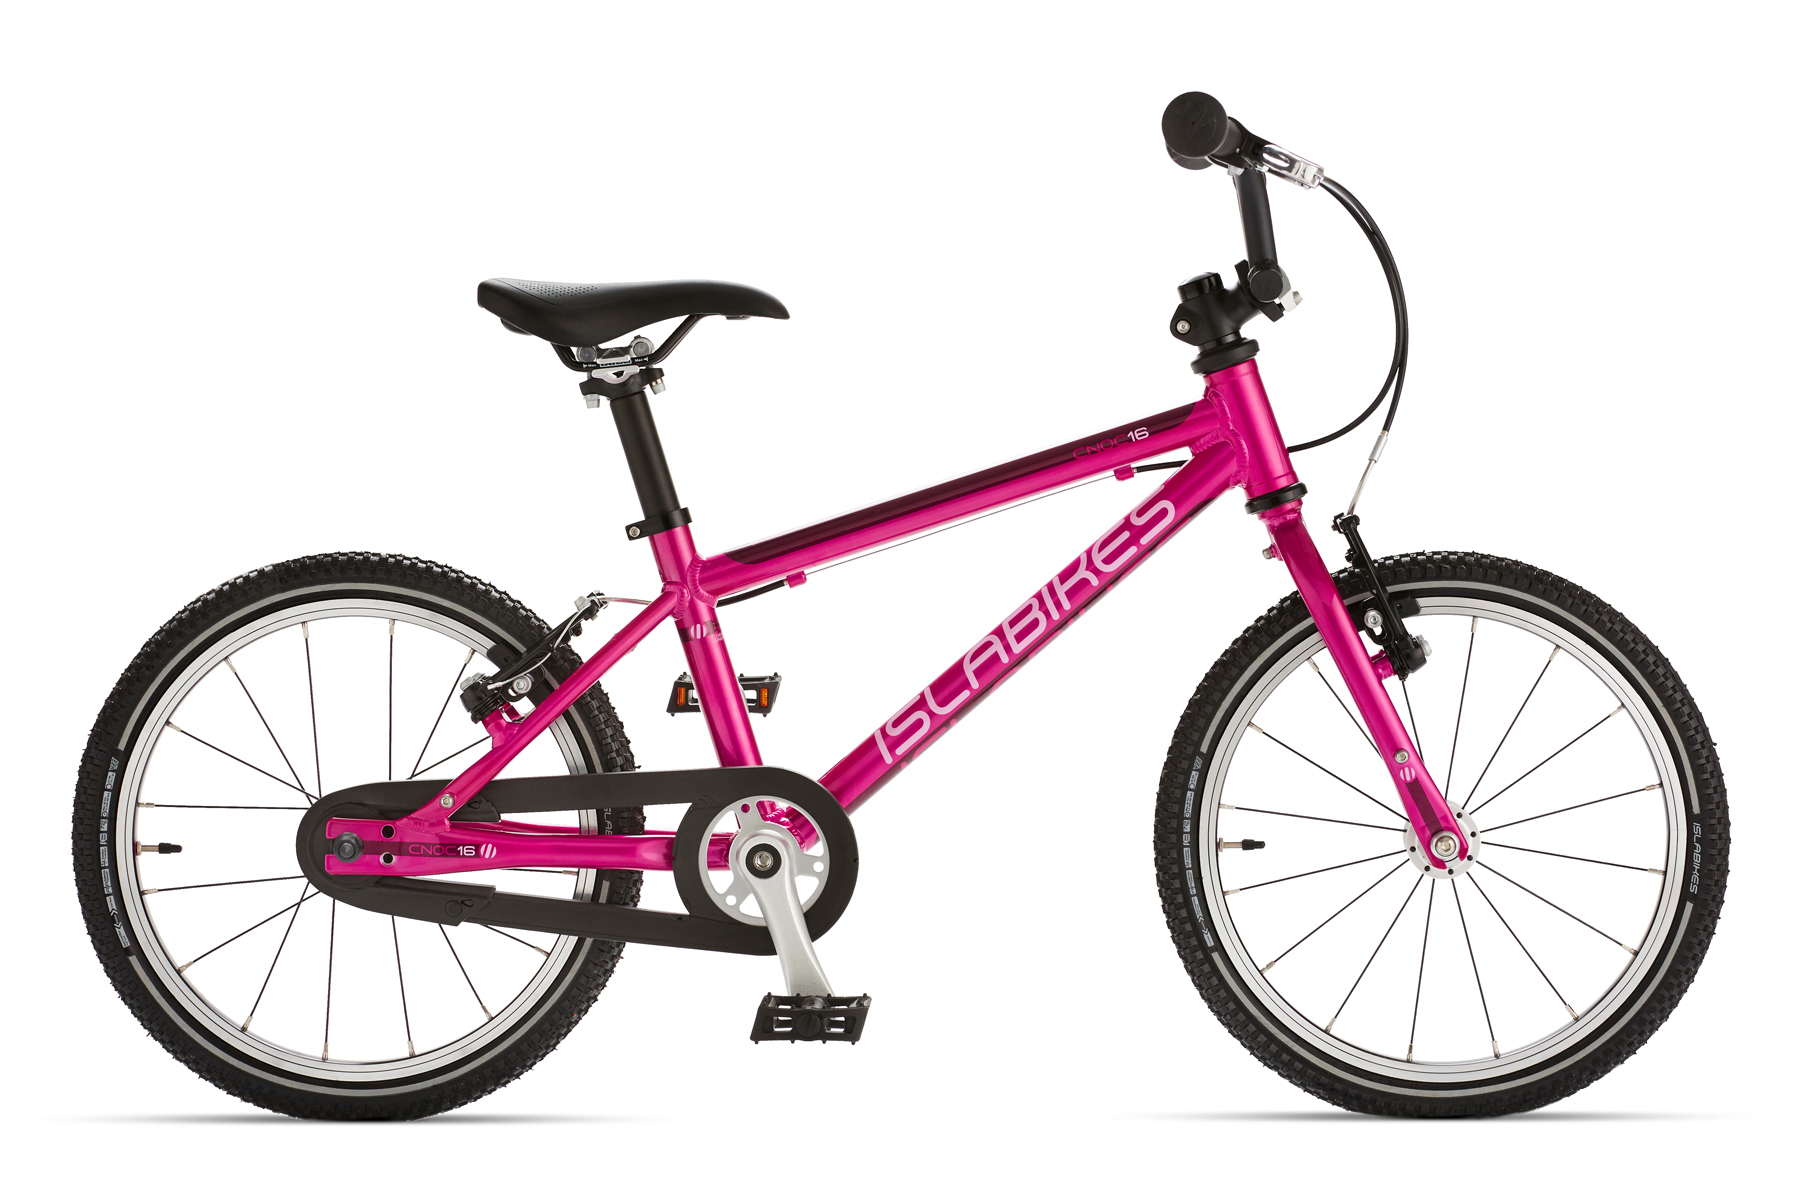 Islabikes Cnoc 16 – Quality, lightweight bike for children age 4+